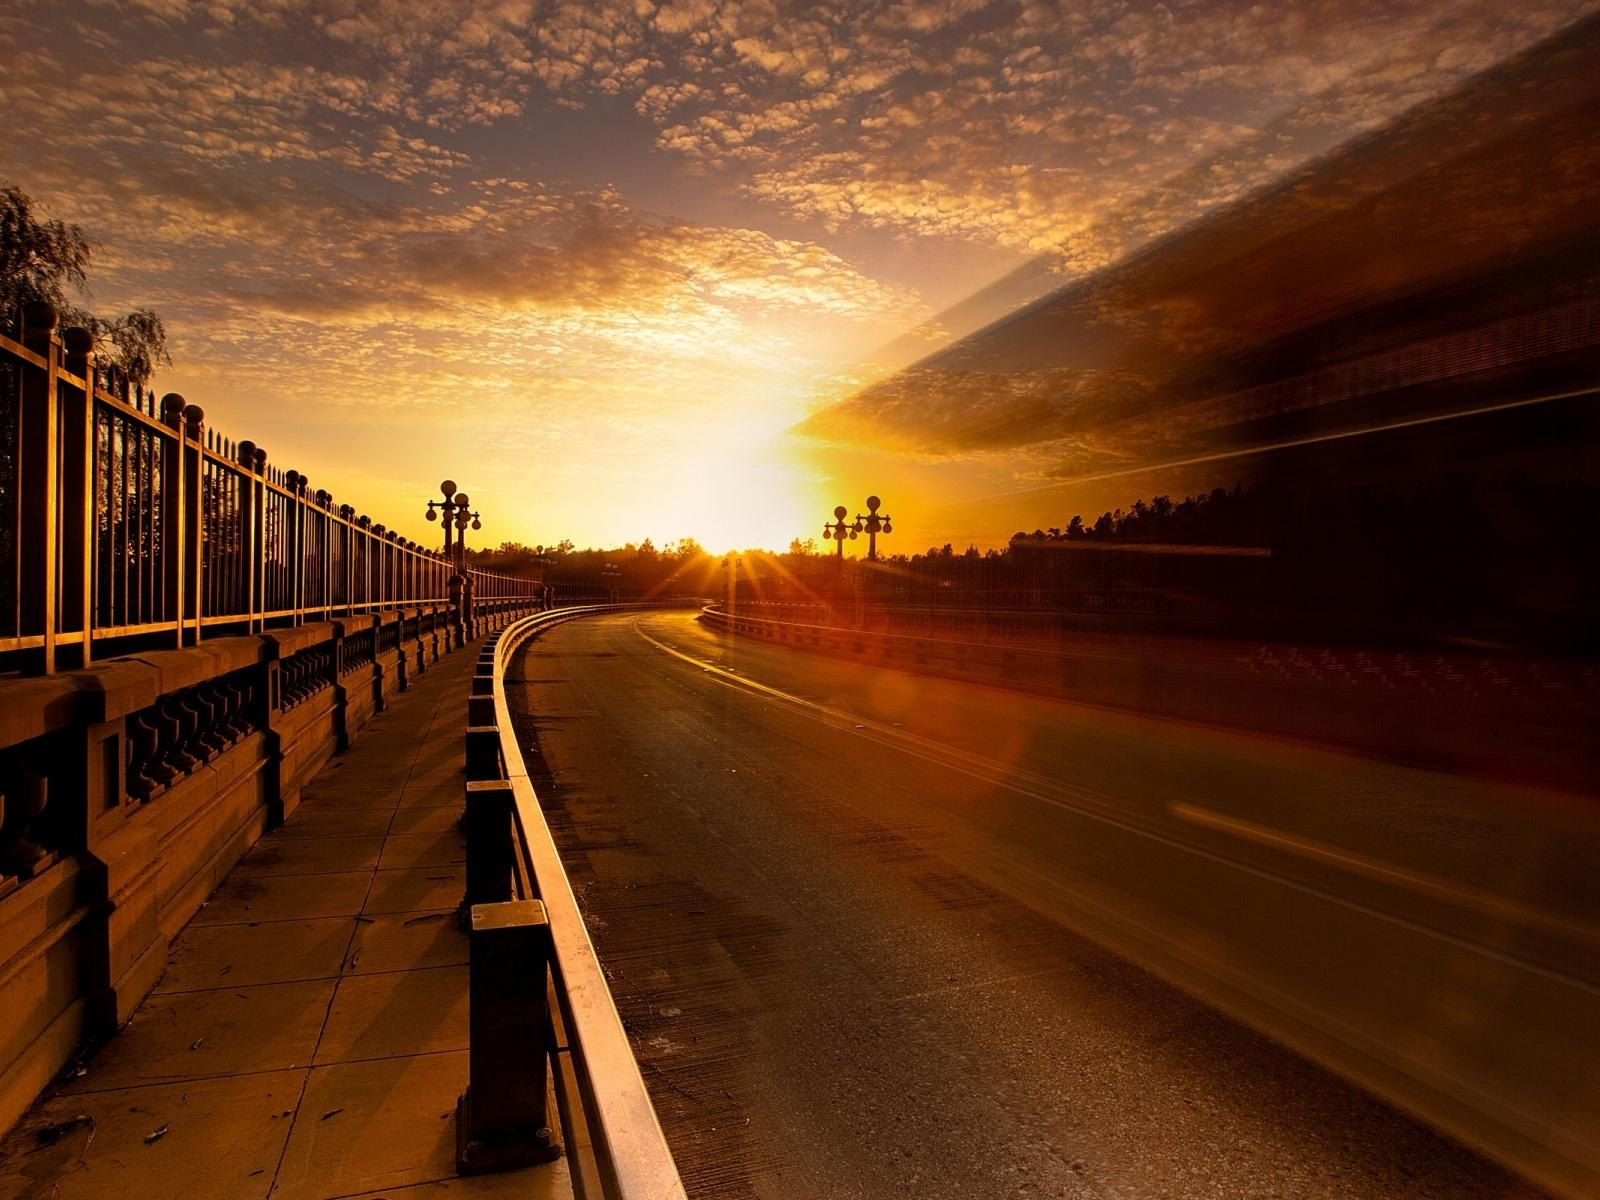 Similar wallpapers for Curve road in sunset 1390